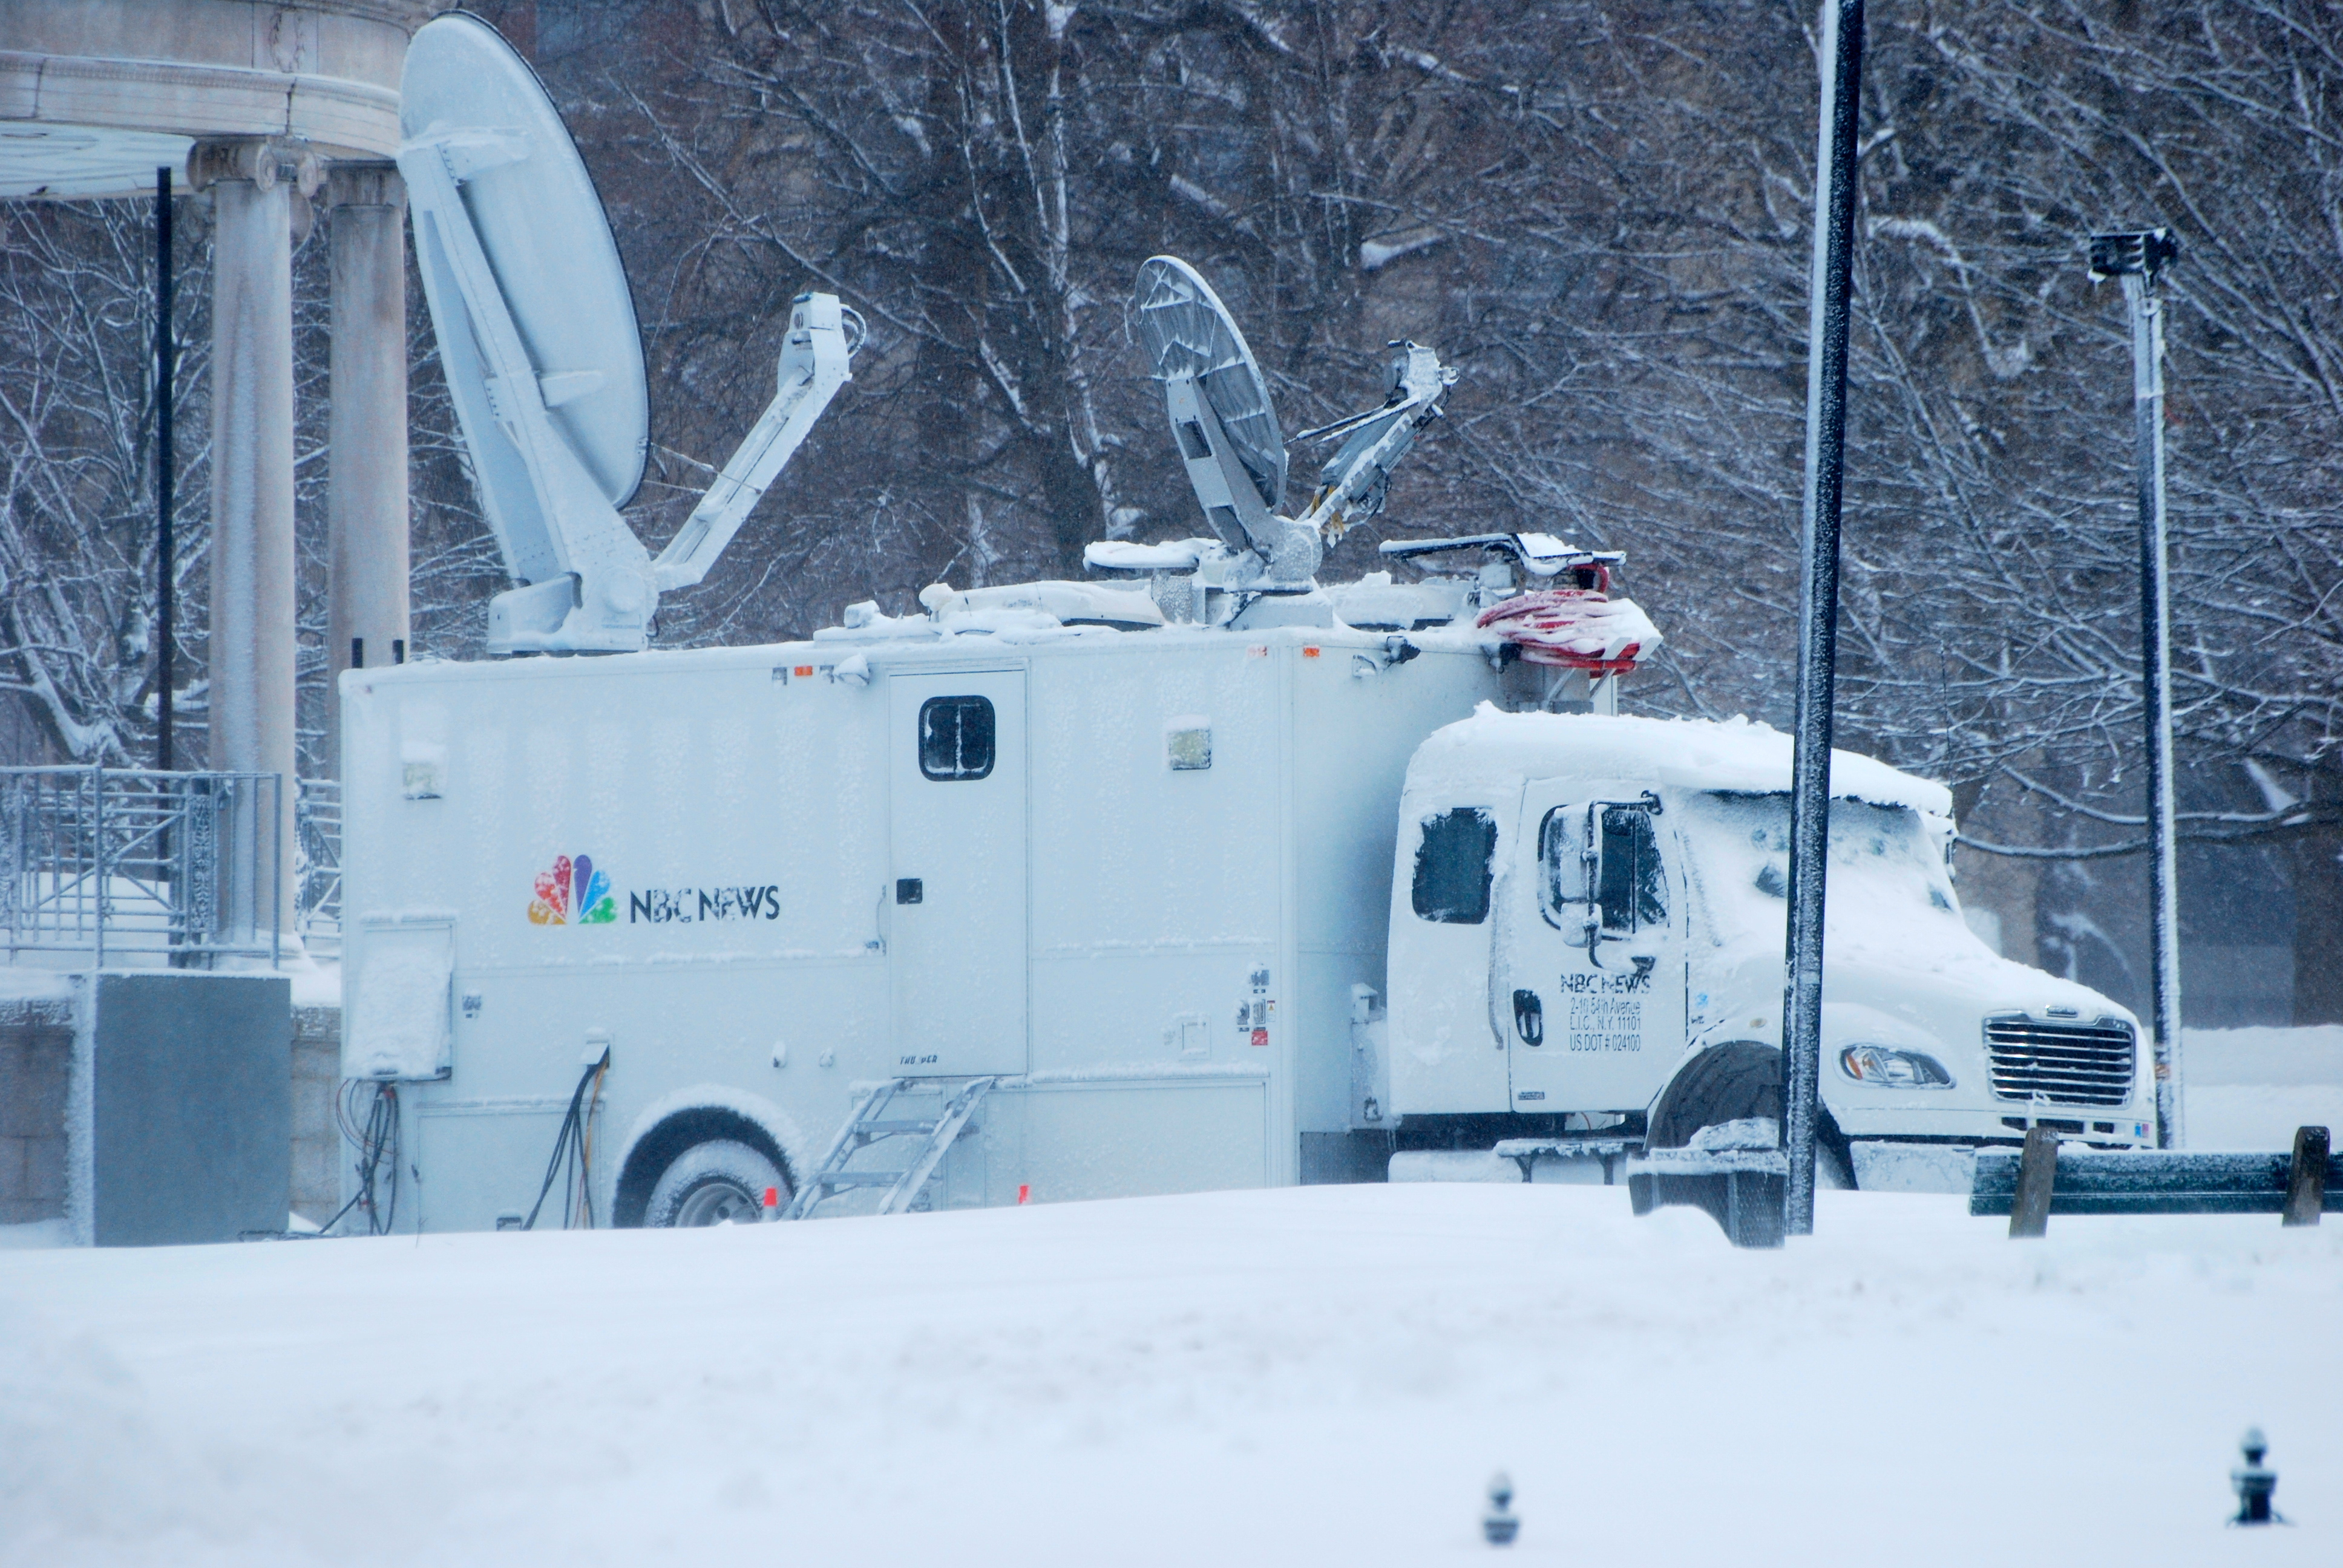 NBC news truck in Boston in Nemo